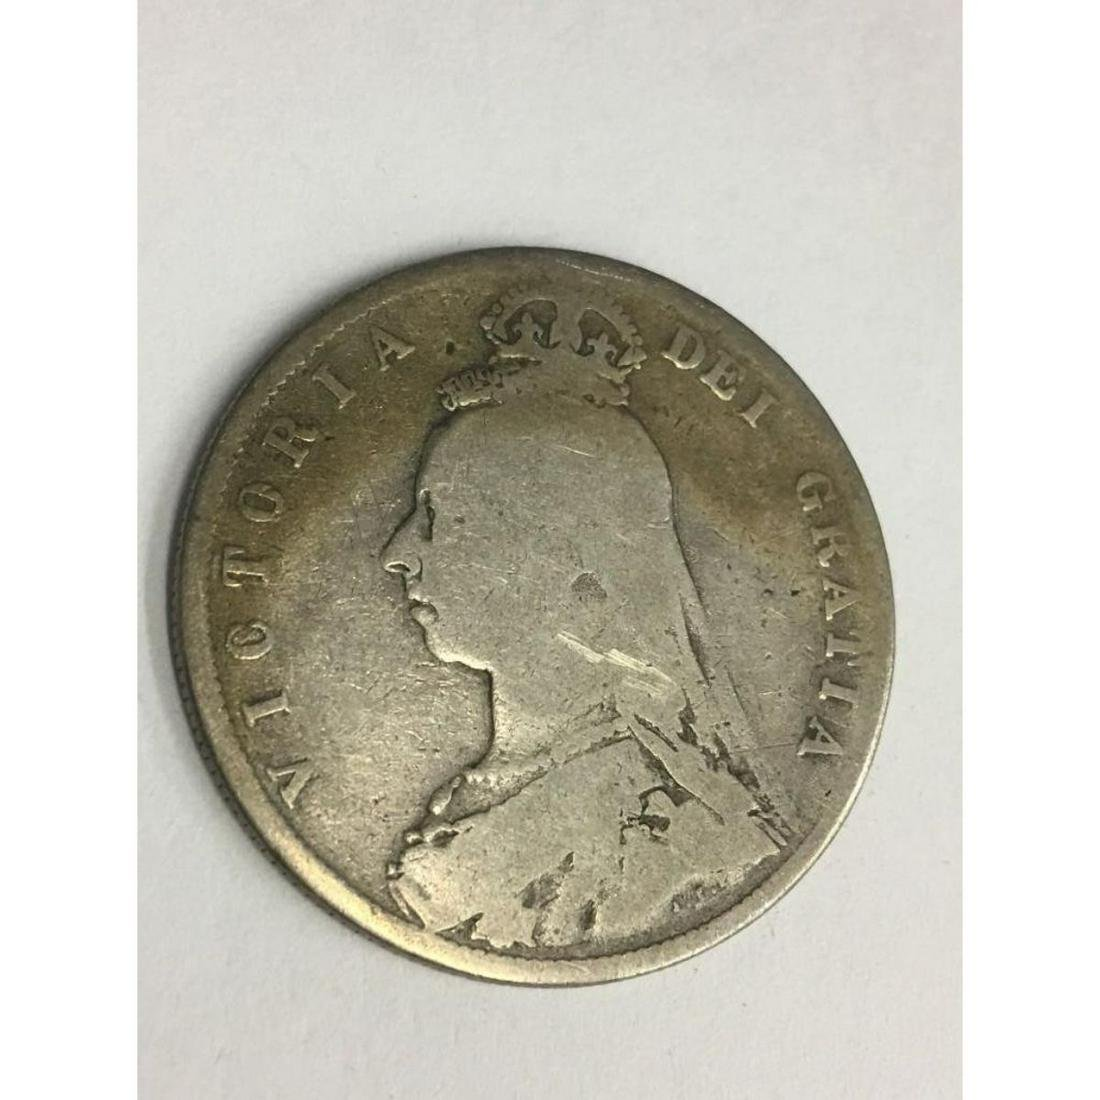 1888 Great Britain 1/2 Crown Coin 925 Silver